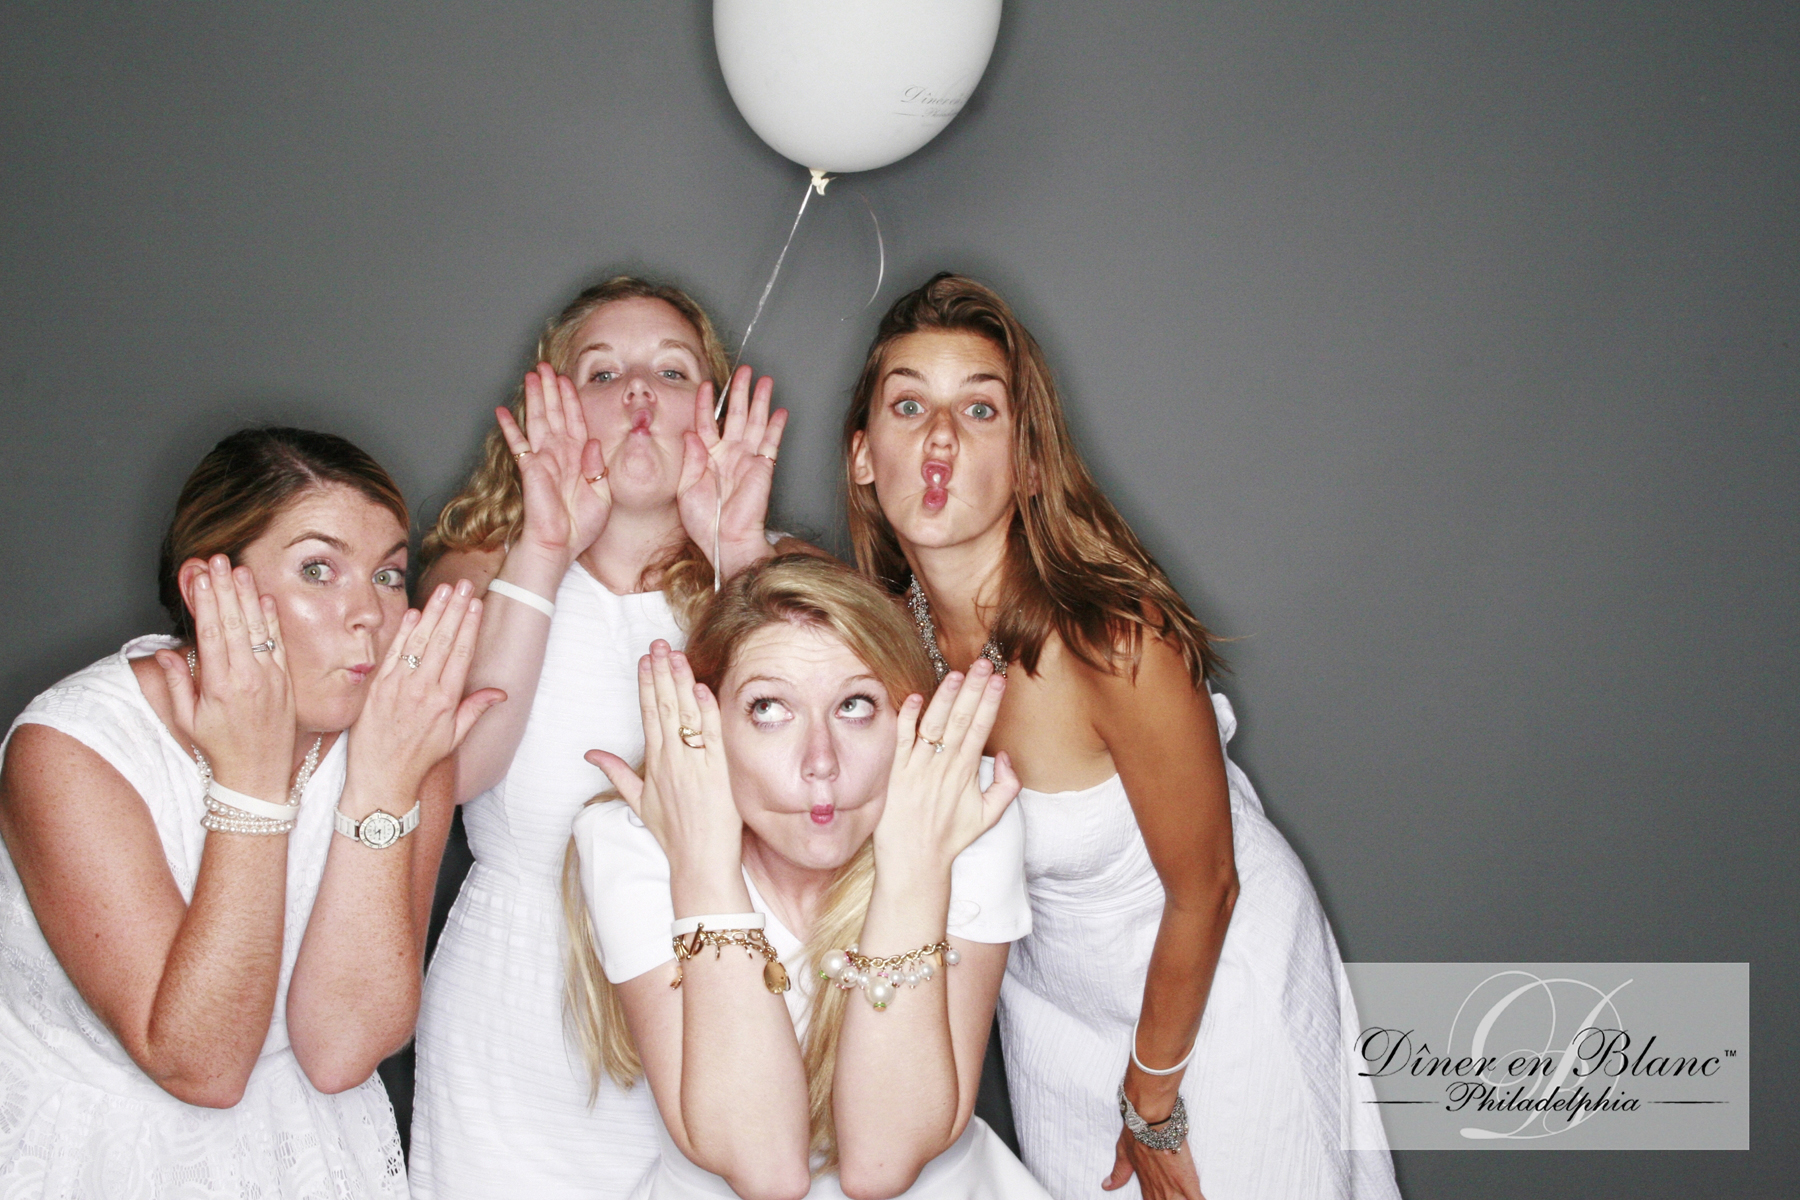 Philadelphia photo booth Diner en Blanc fish face